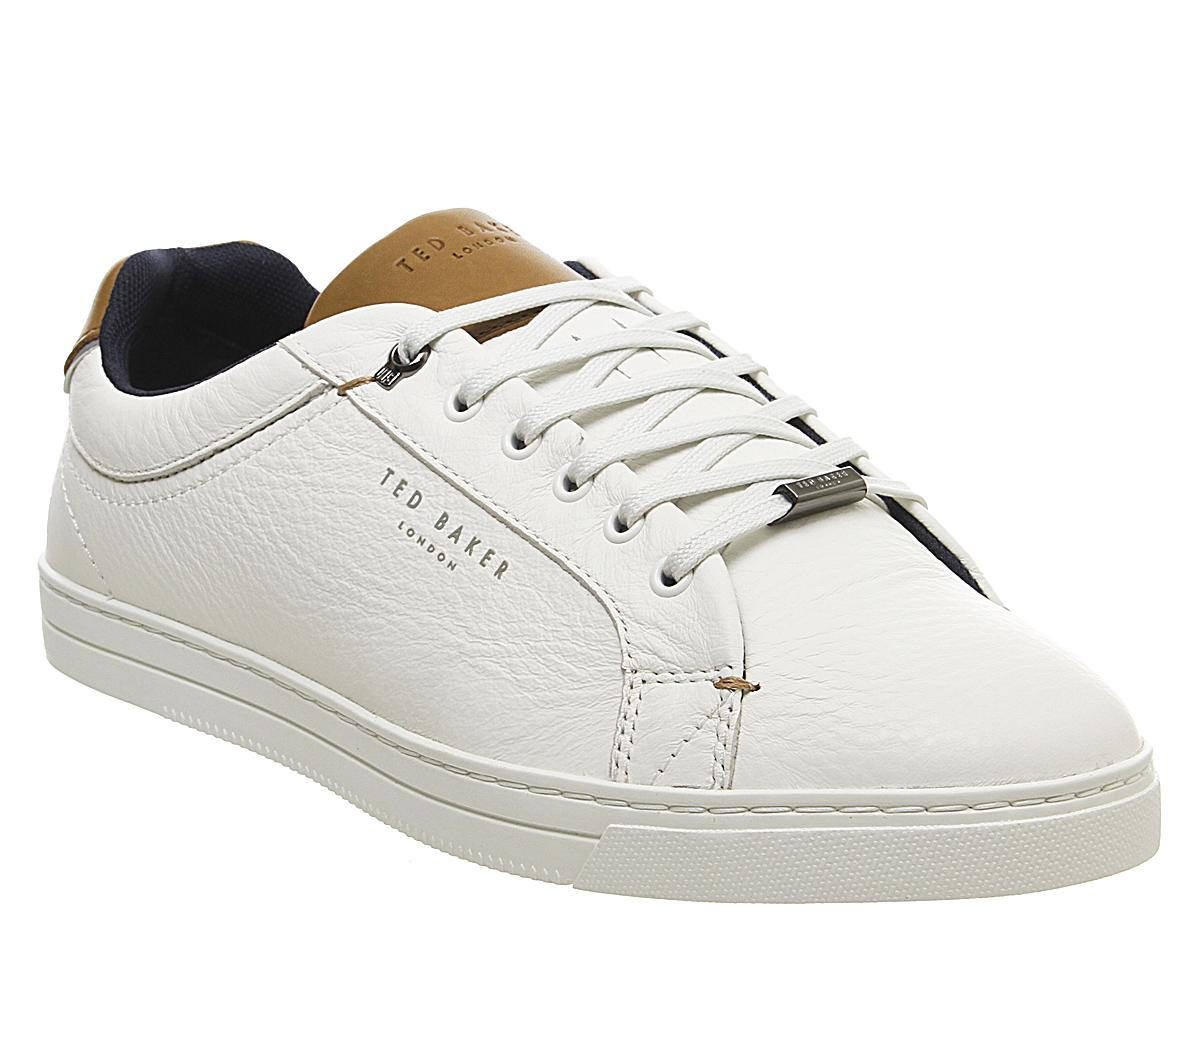 Thwally Sneakers